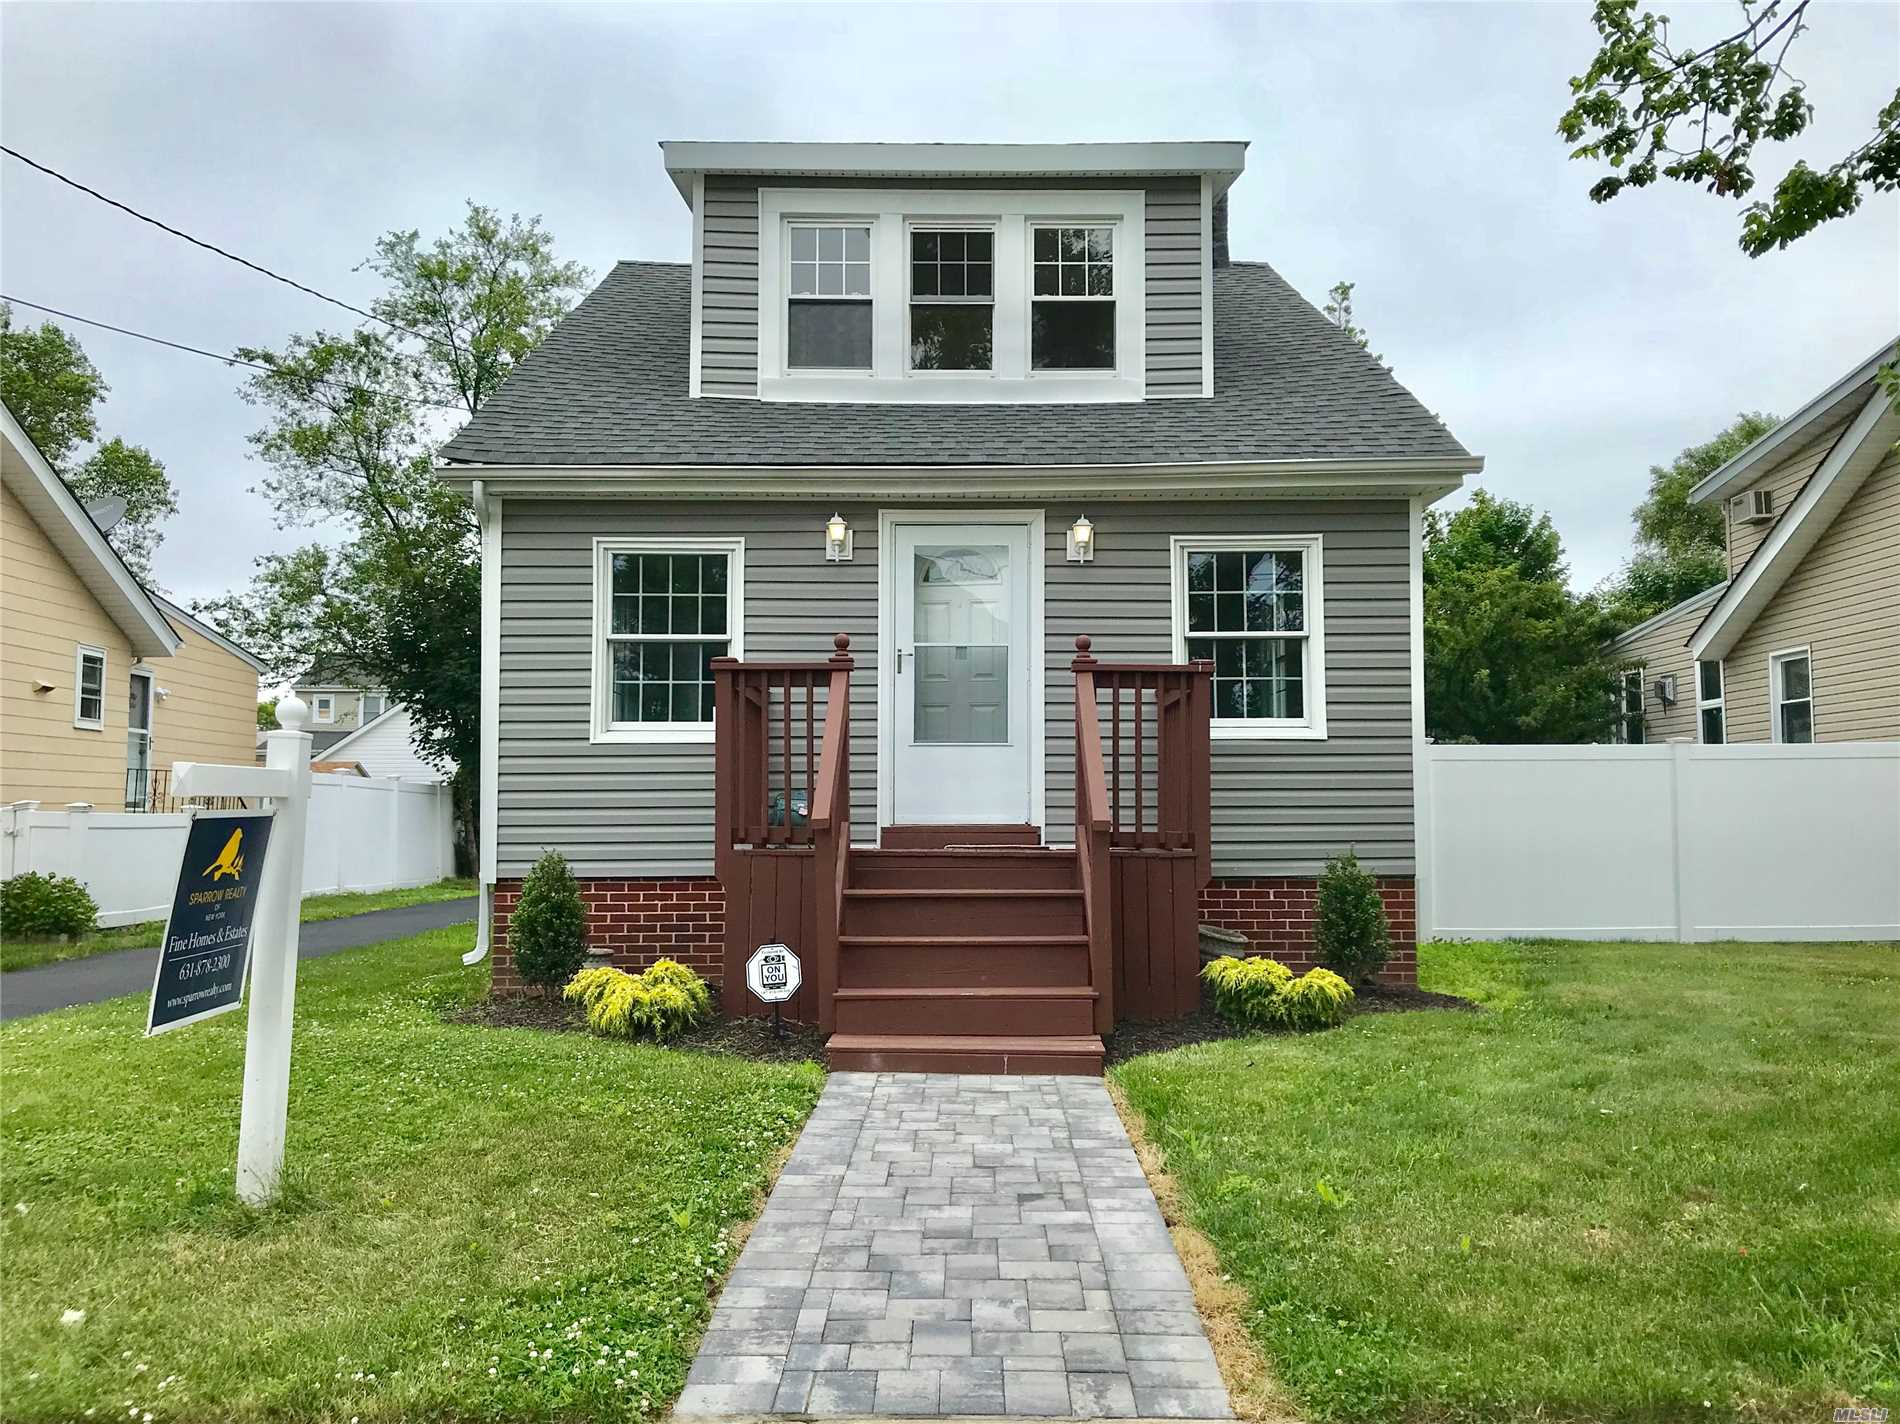 Just Renovated! This 3 Bedroom 1 Bath Renovated Colonial Proudly Features New Kitchen Features Stainless Steel Appliances. Spacious Living Room And Dining Room , Hardwood Floors Throughout, Basement And Det 1 Car Garage. Close To All! Turn Key Ready!